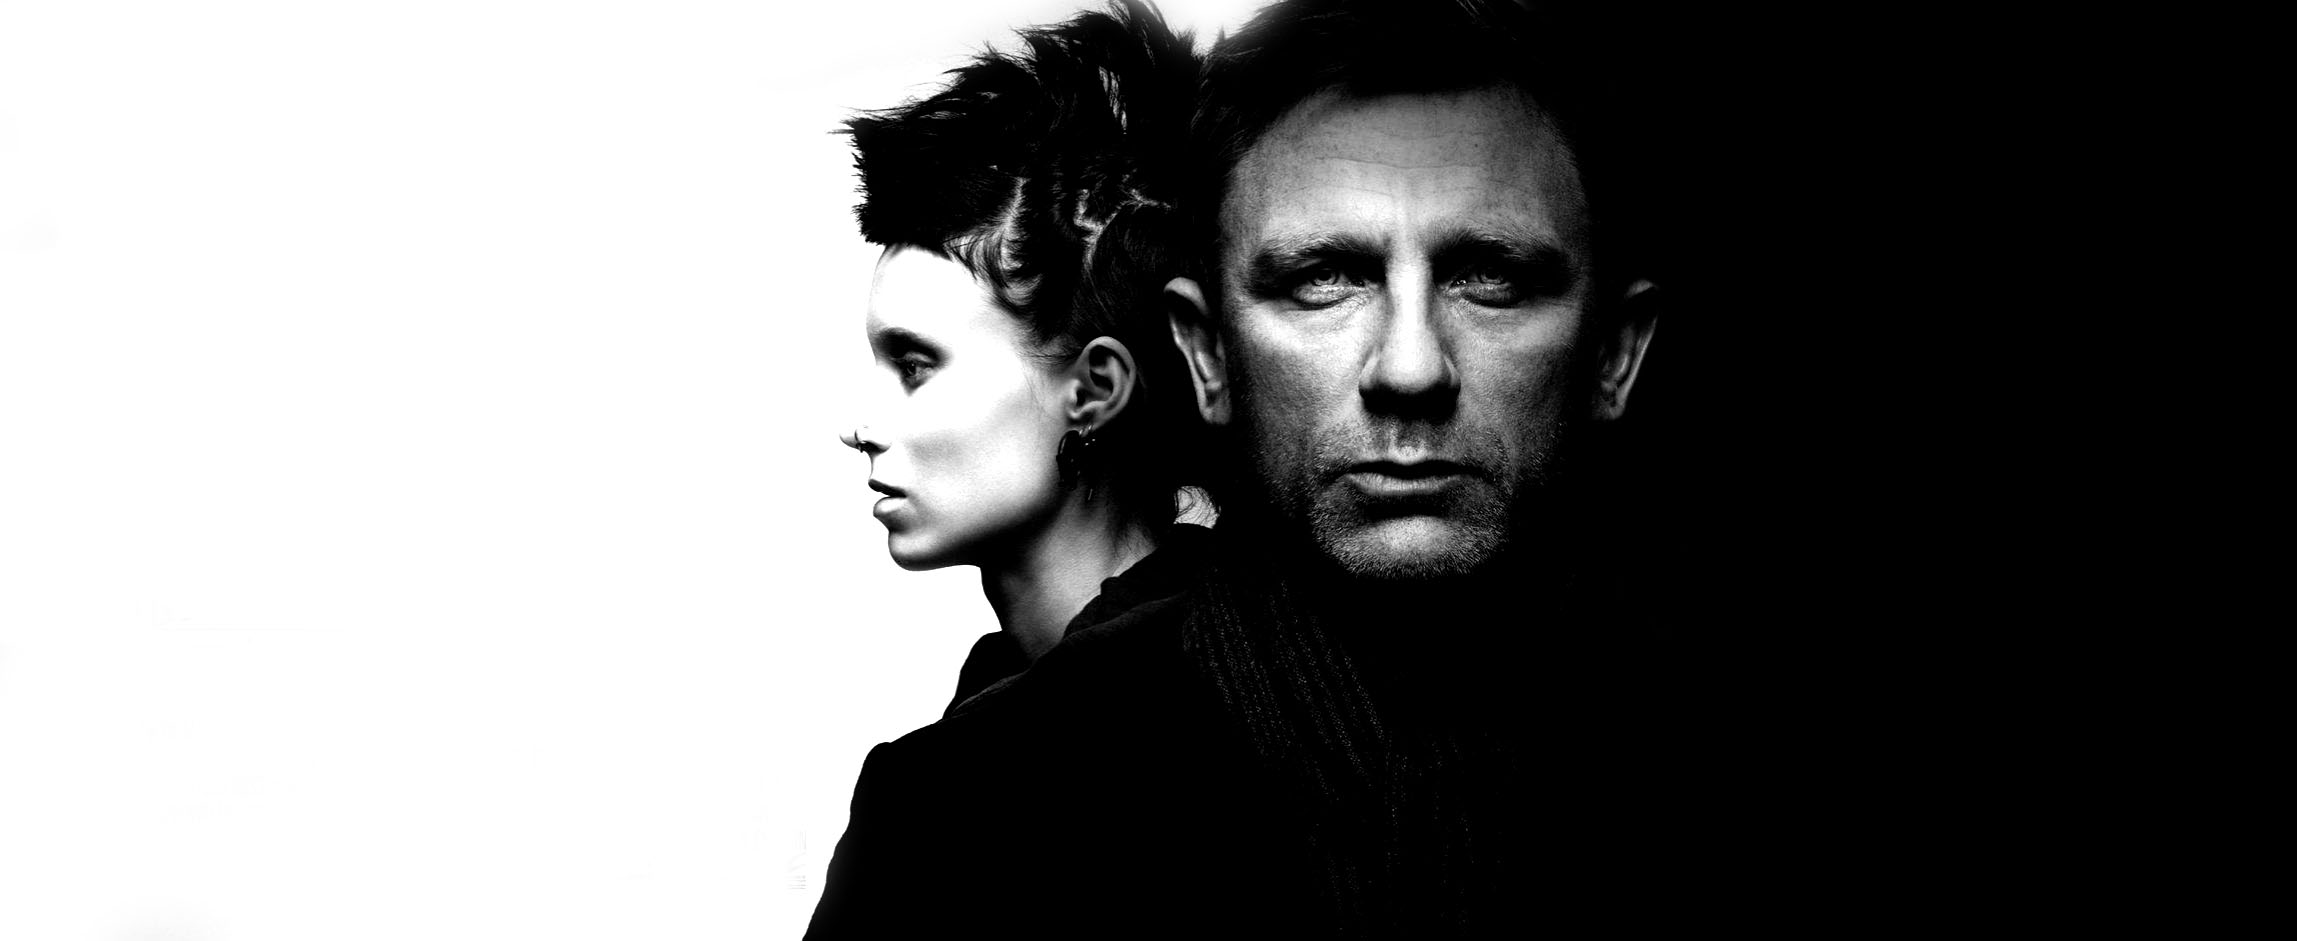 Rooney Mara Wallpaper Hd The Girl With The Dragon Tattoo The Red Chronicles